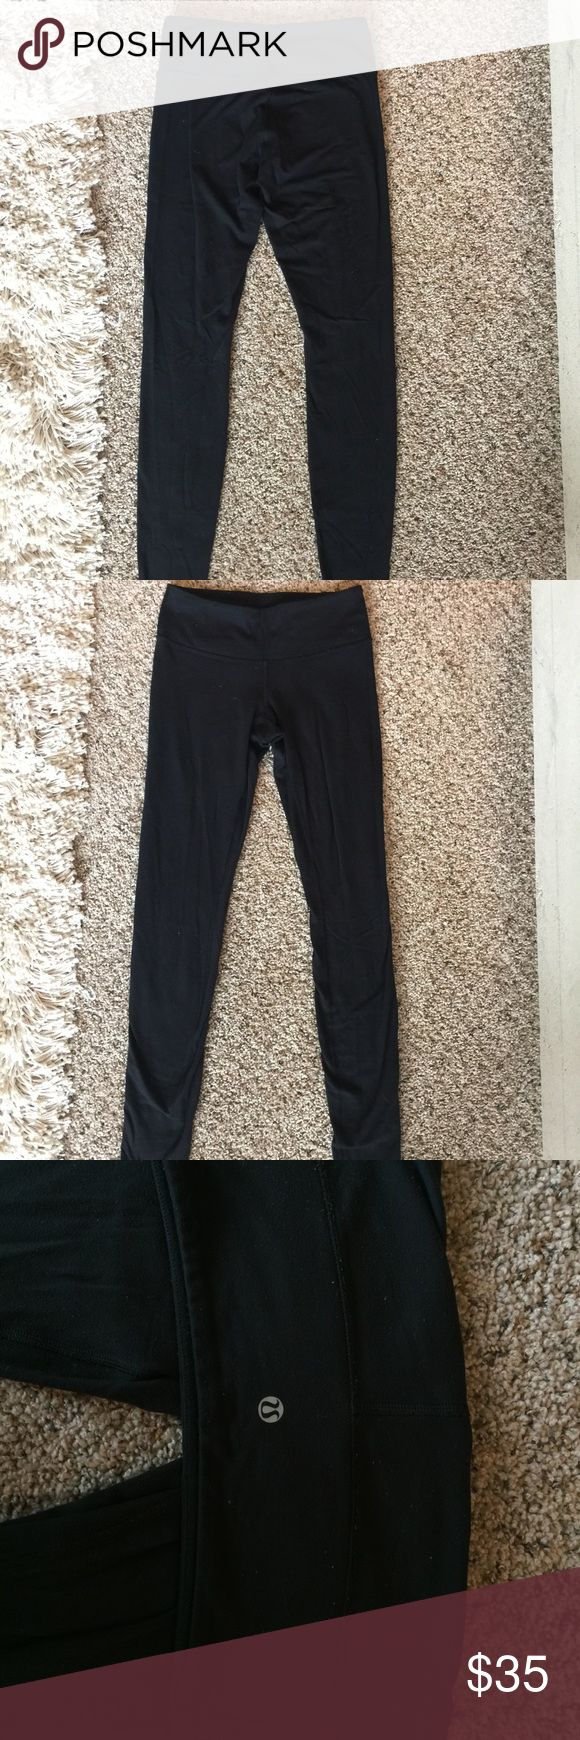 Black Lulu Lemon skinny leg leggings These Lulus are worn but in great condition. They are cotton, soft, and breathable. Size 4. Selling cheap! lululemon athletica Pants Leggings